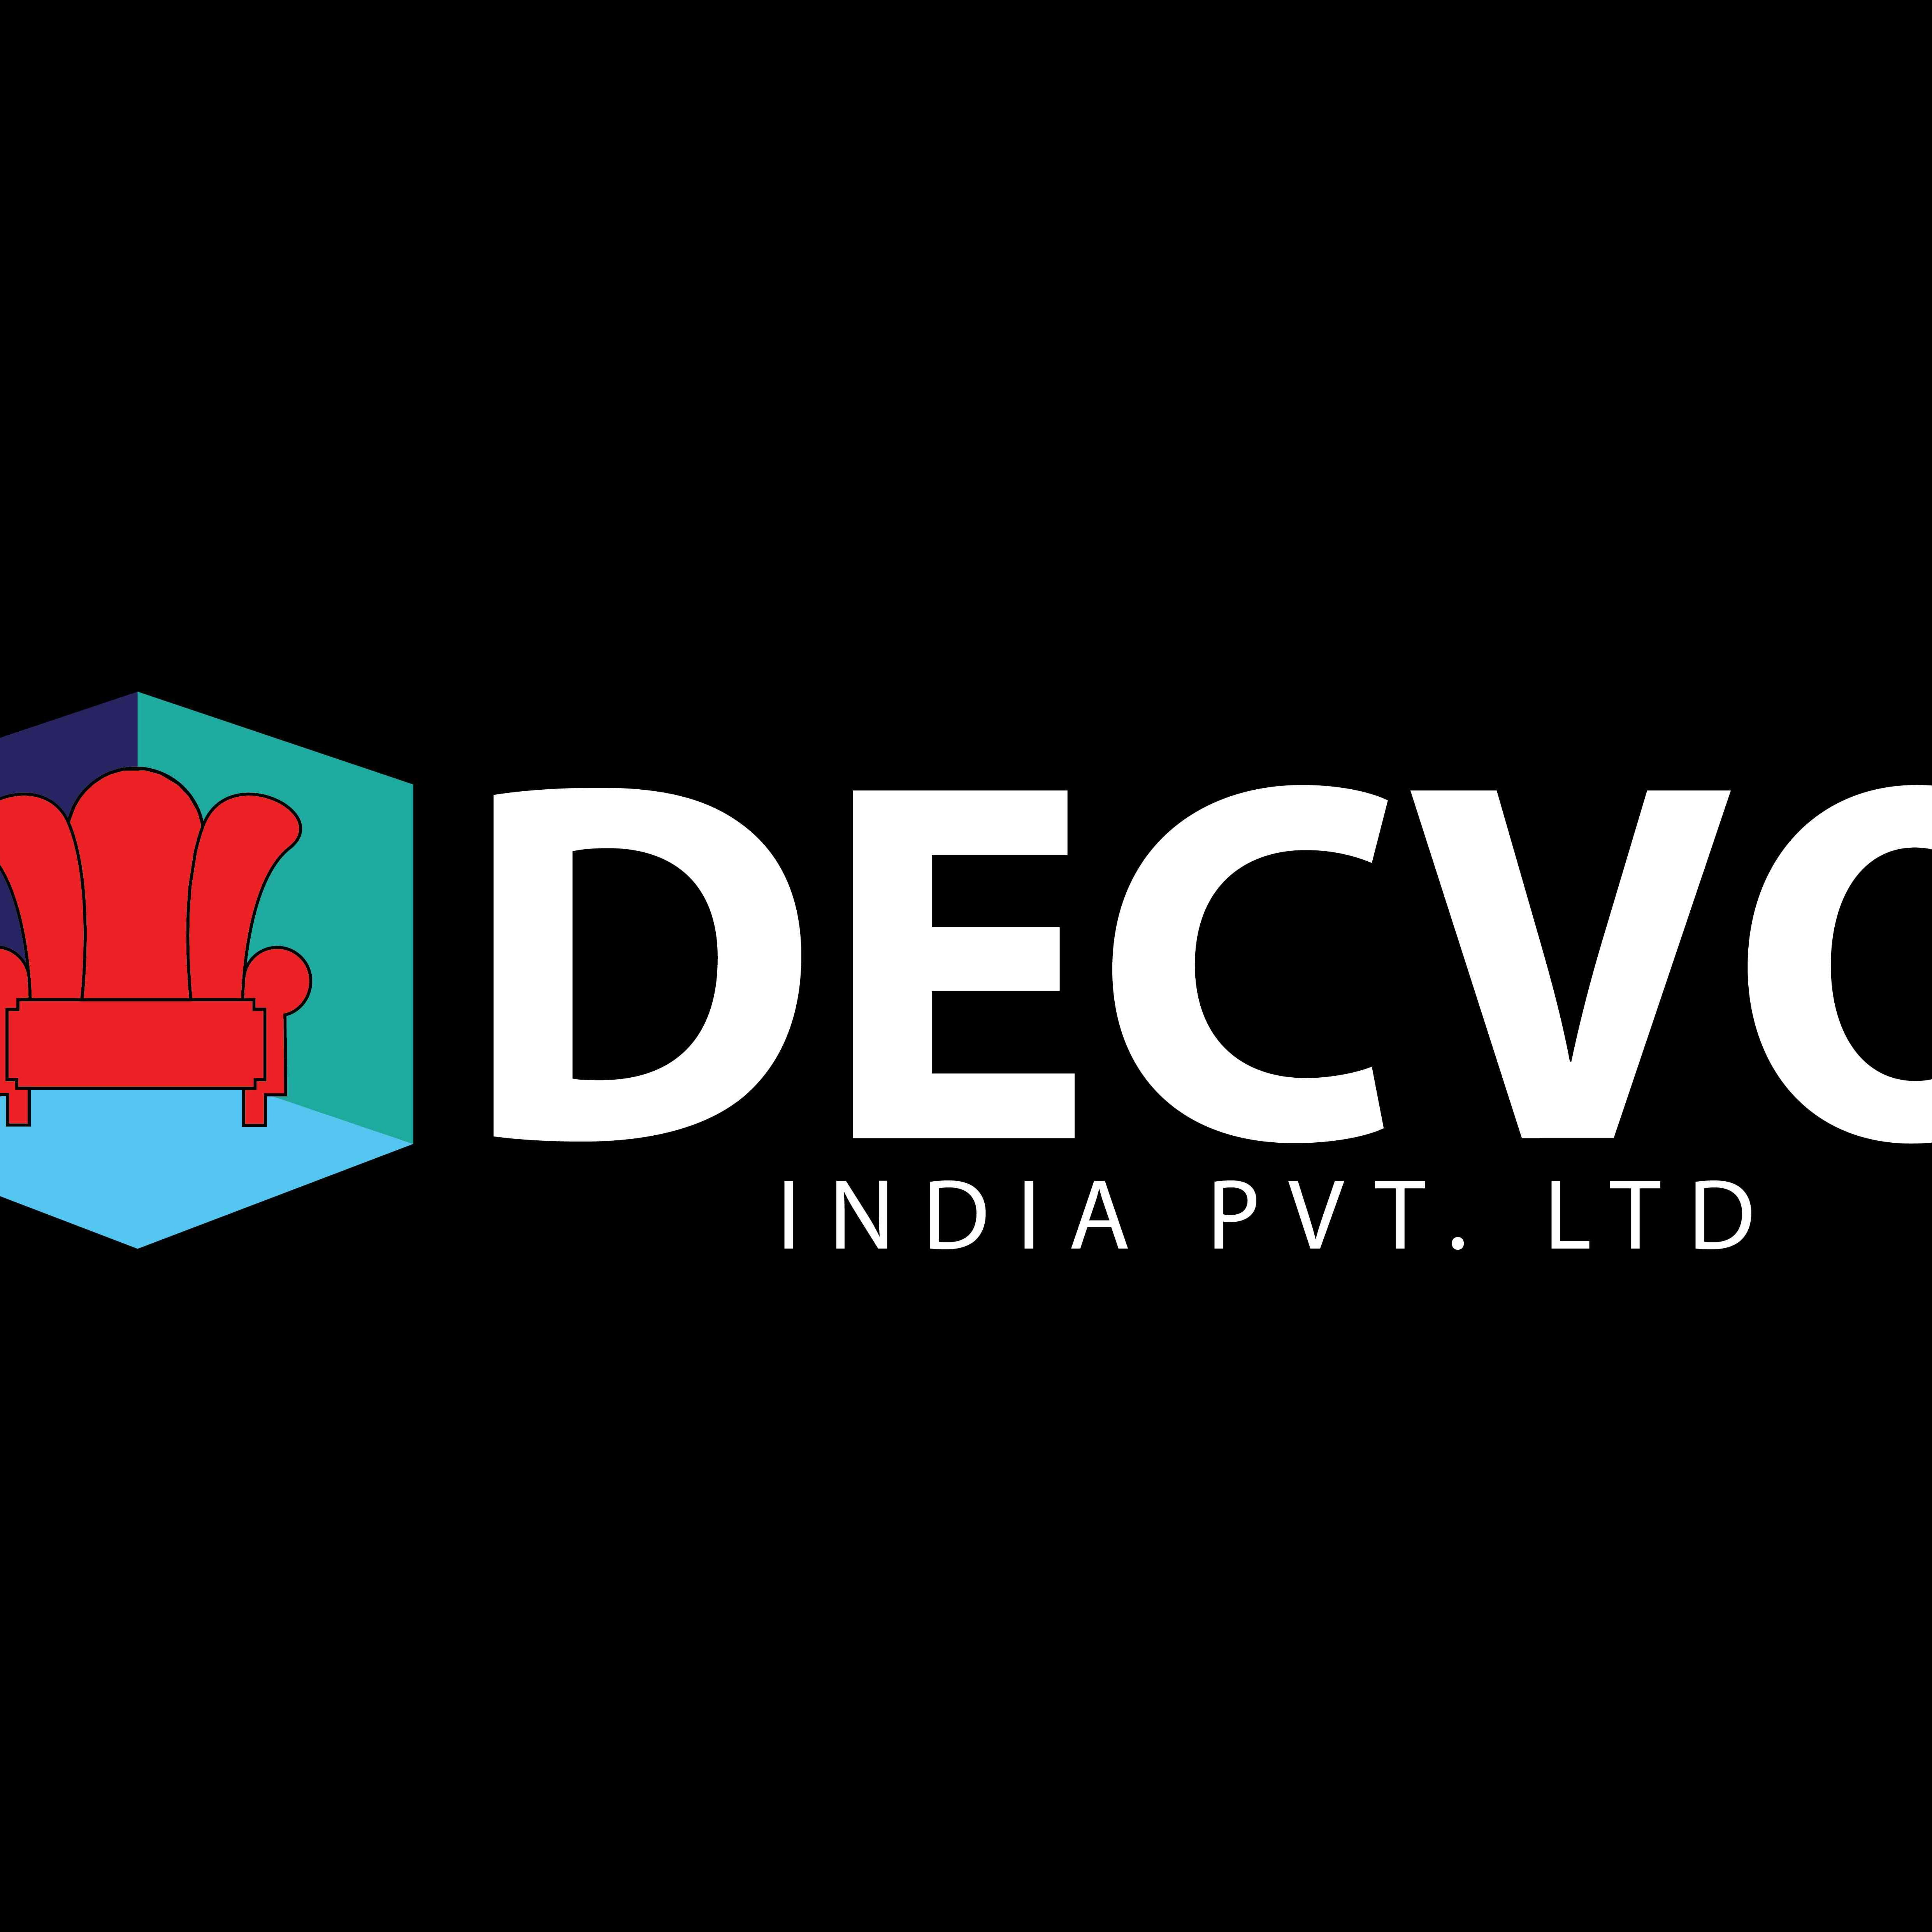 Decvo India Private Limited